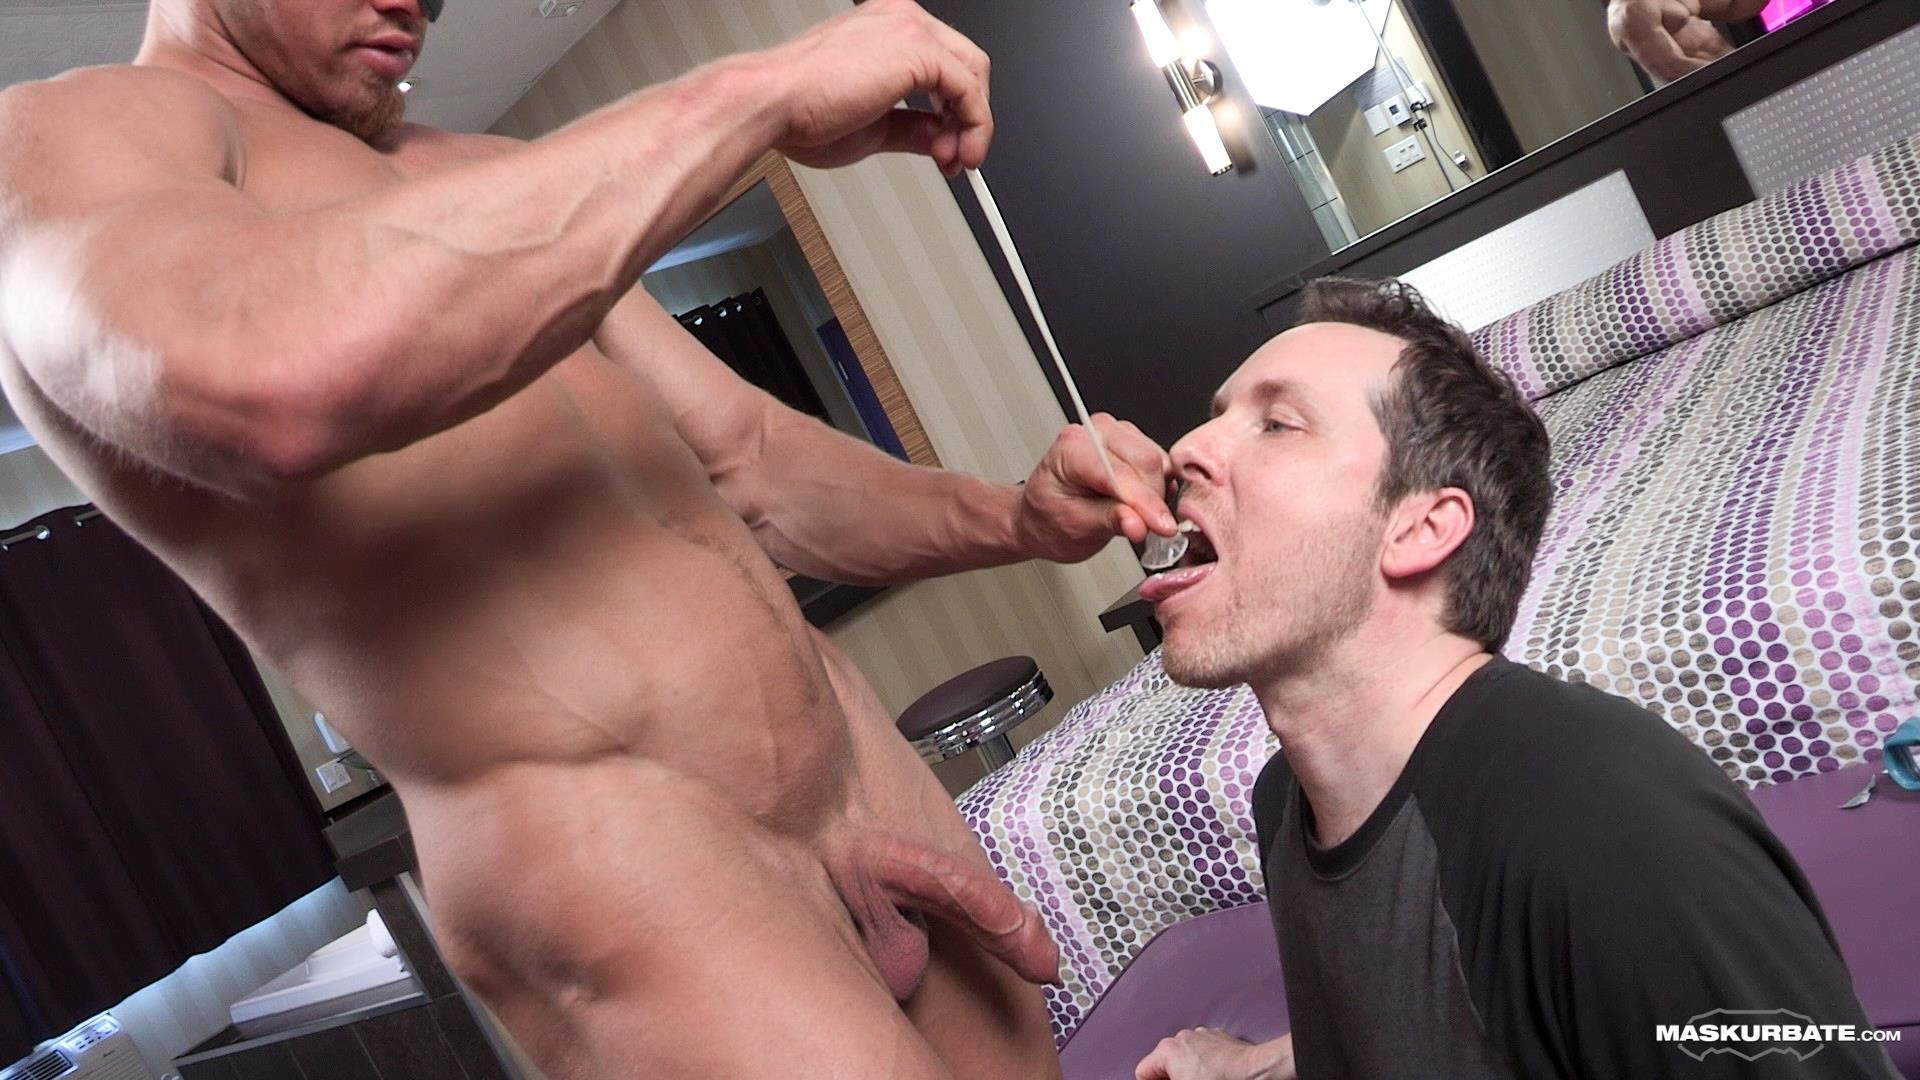 Maskurbate-Brad-and-Pascal-Muscle-Hunk-Jerking-Off-In-A-Condom-13 Straight Masked Muscle Hunk Gets Paid To Jerk Off In A Condom